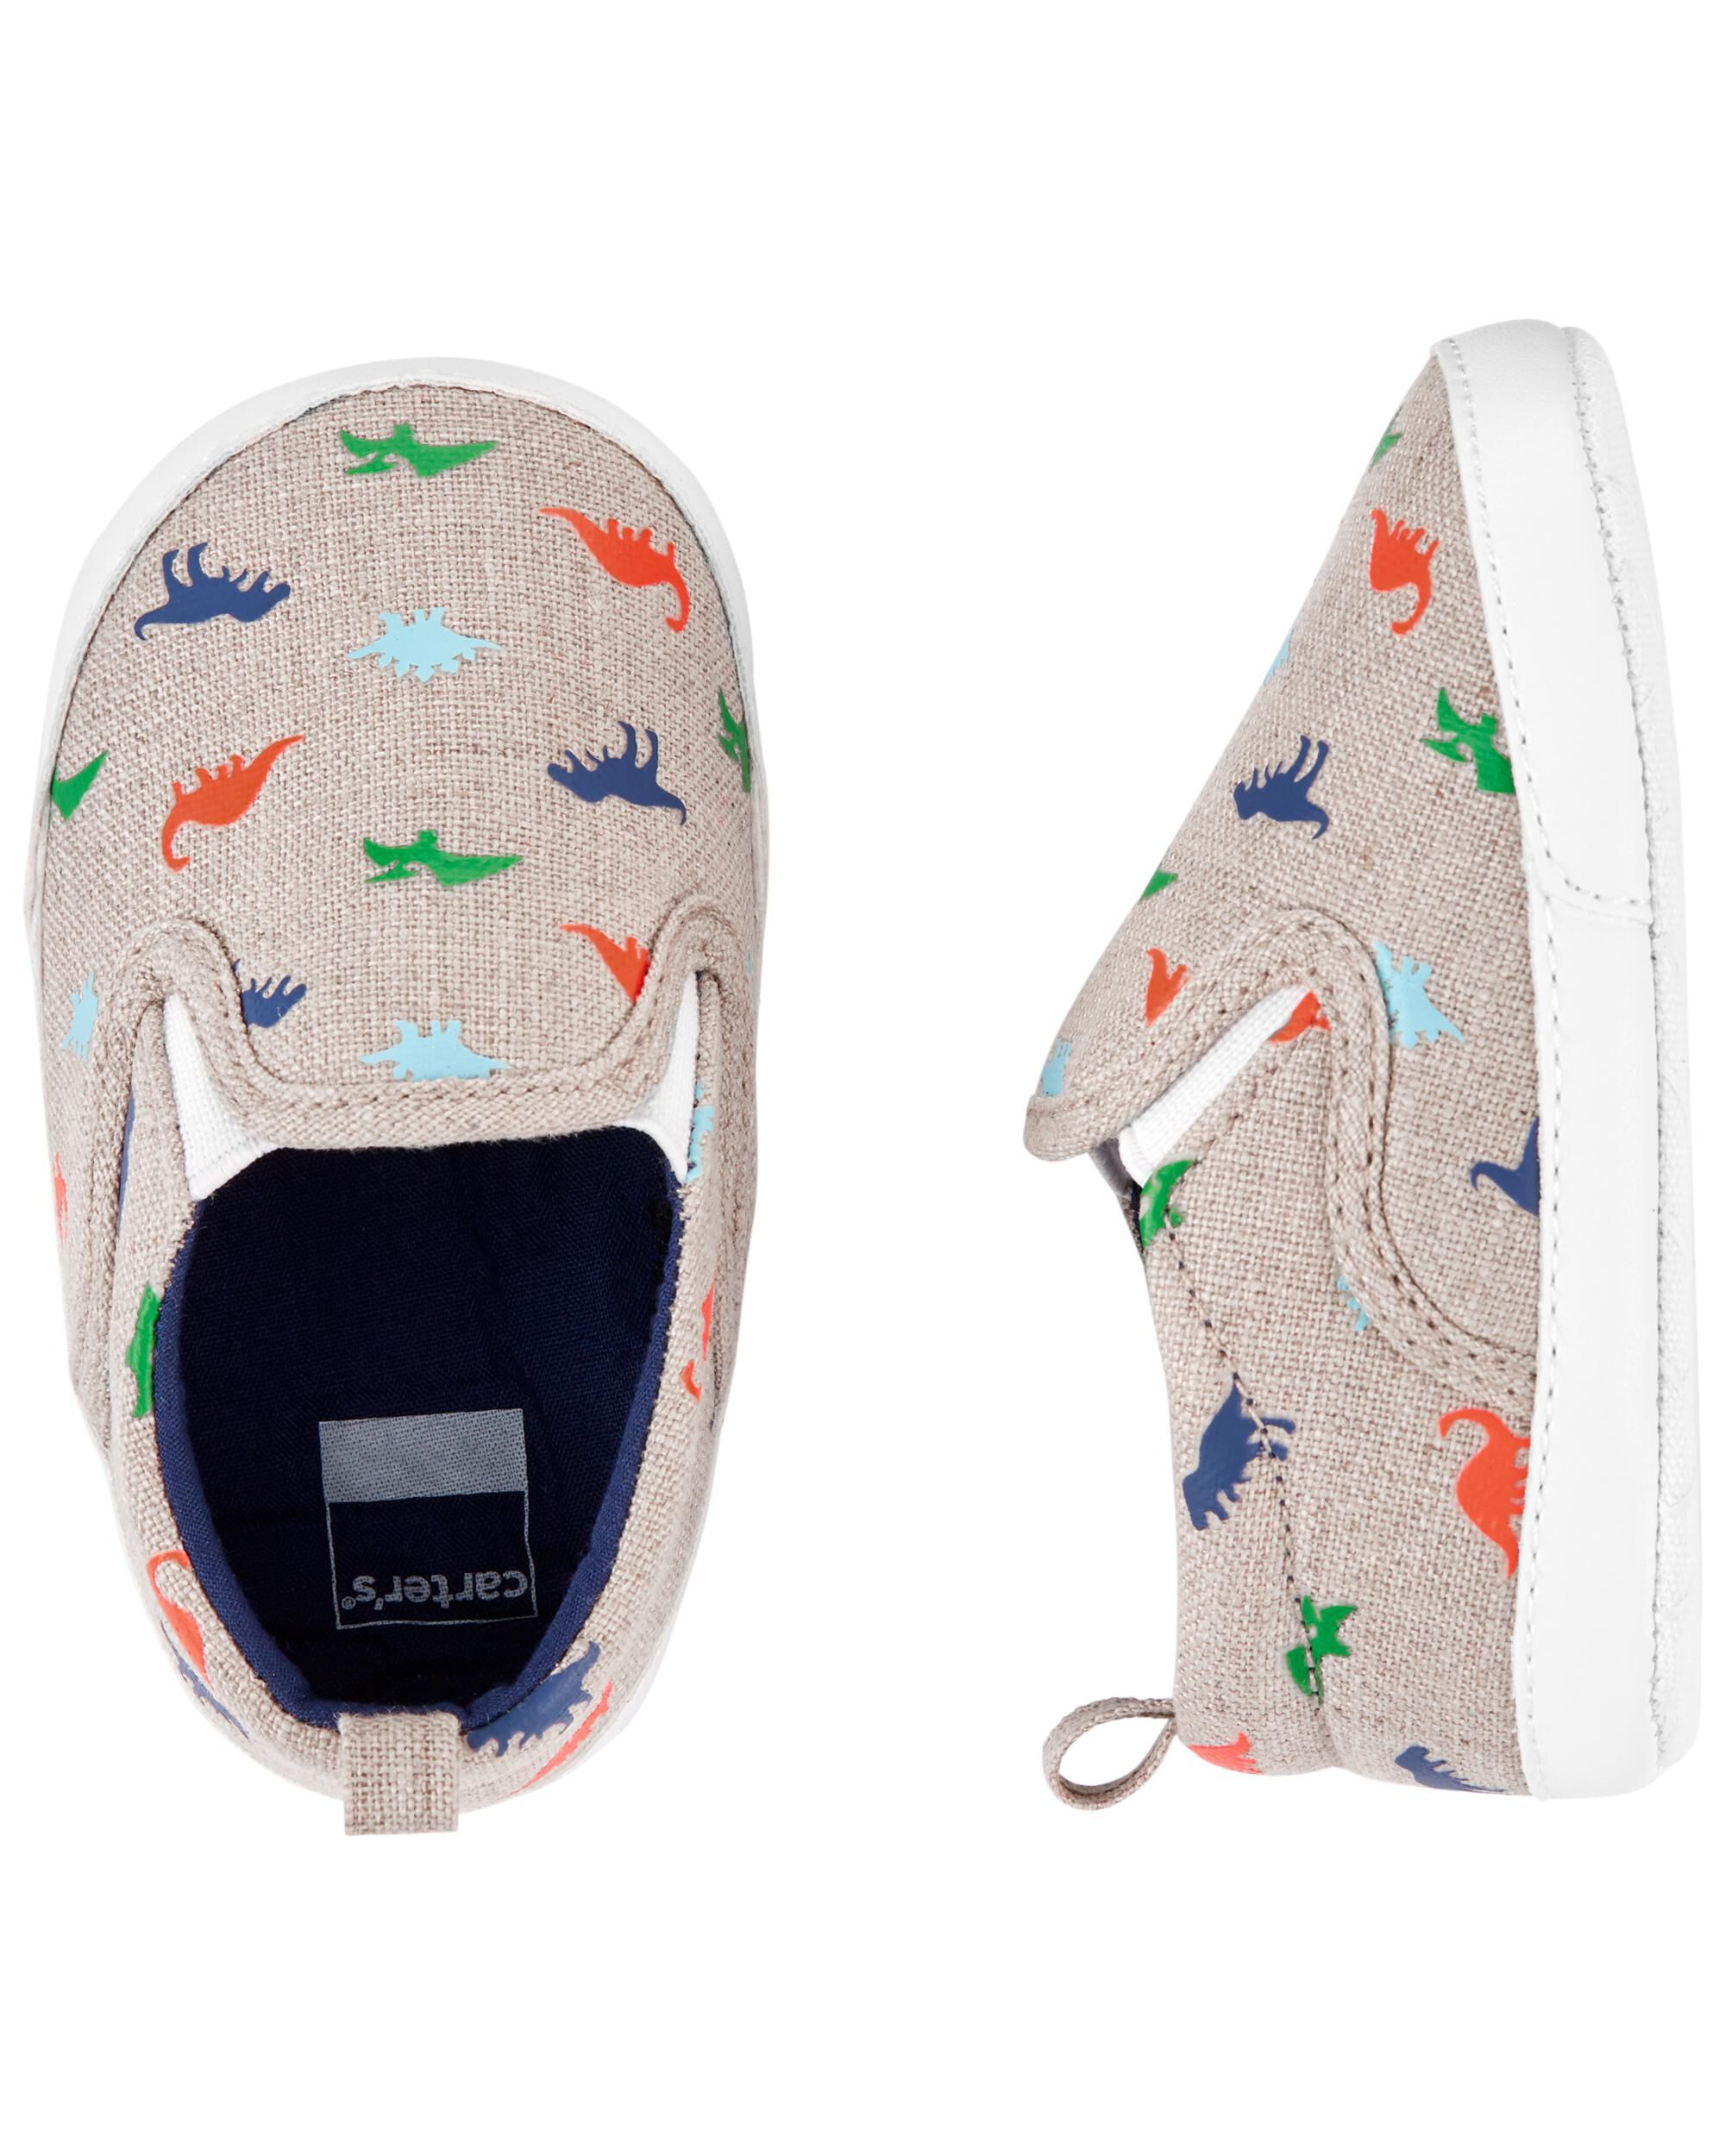 Carters Slip-On Baby Shoes